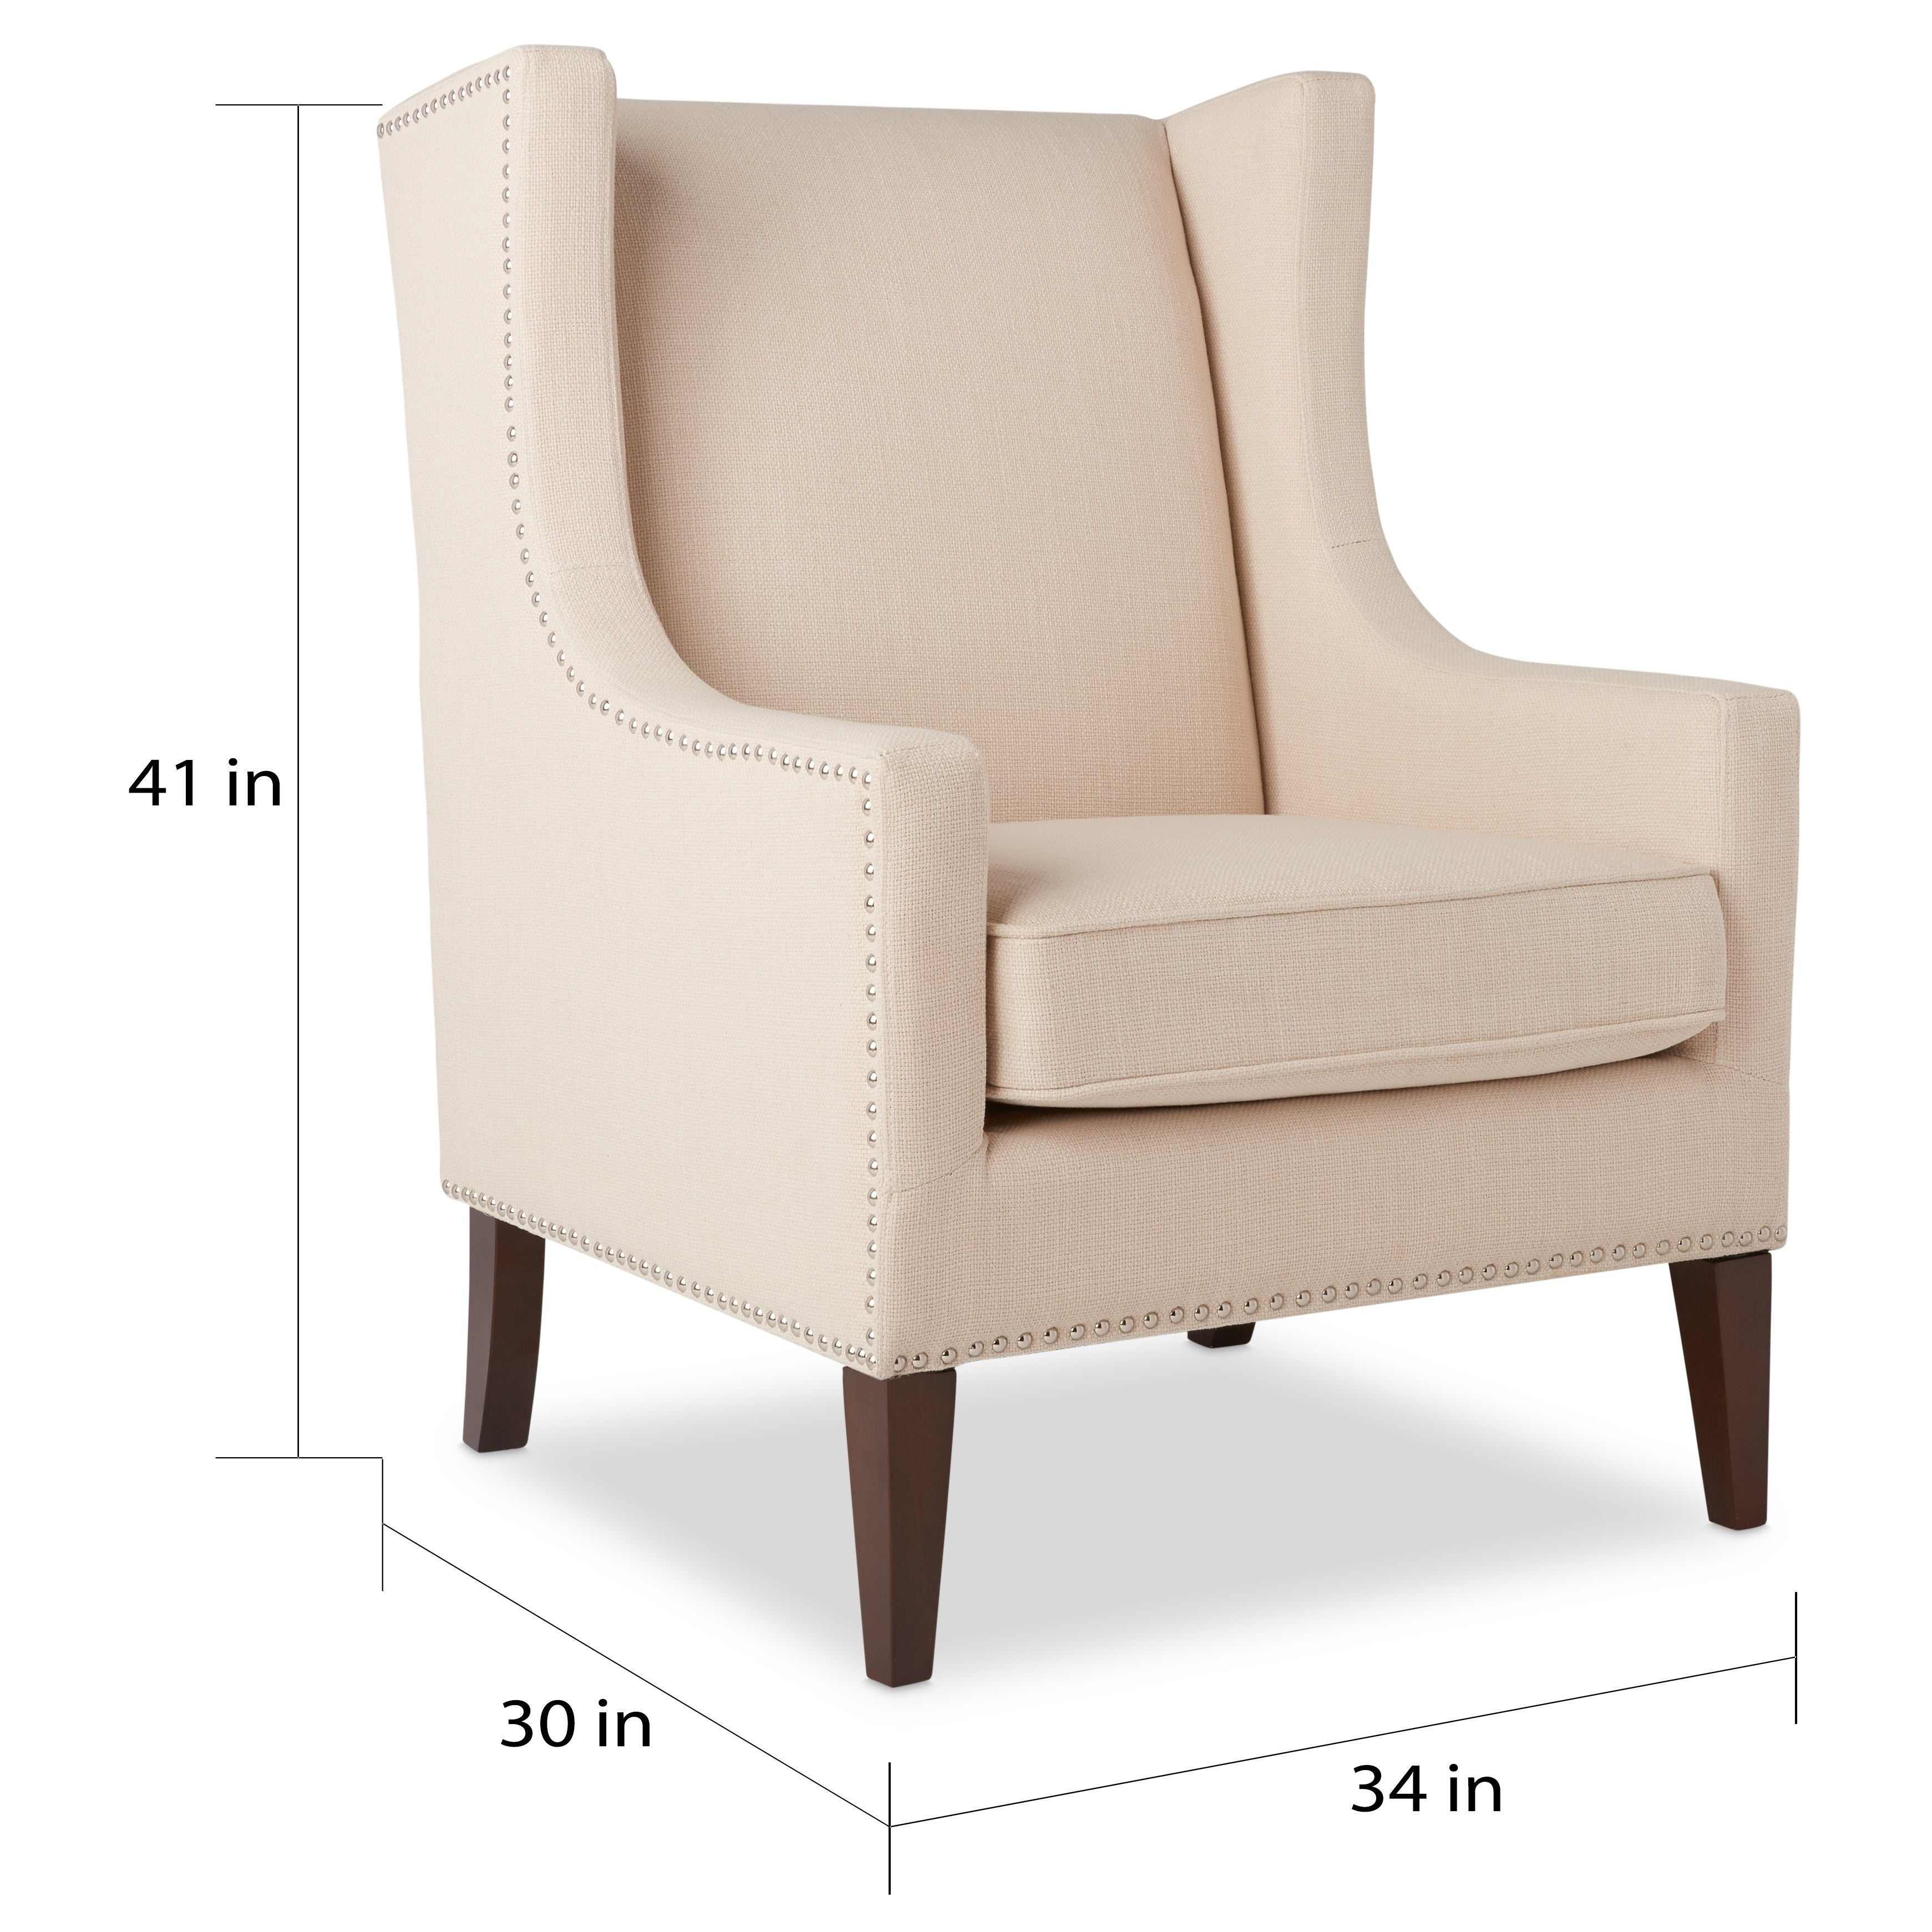 Shop Stones U0026 Stripes Whitmore Lindy Wingback Chair   On Sale   Free  Shipping Today   Overstock.com   6804280